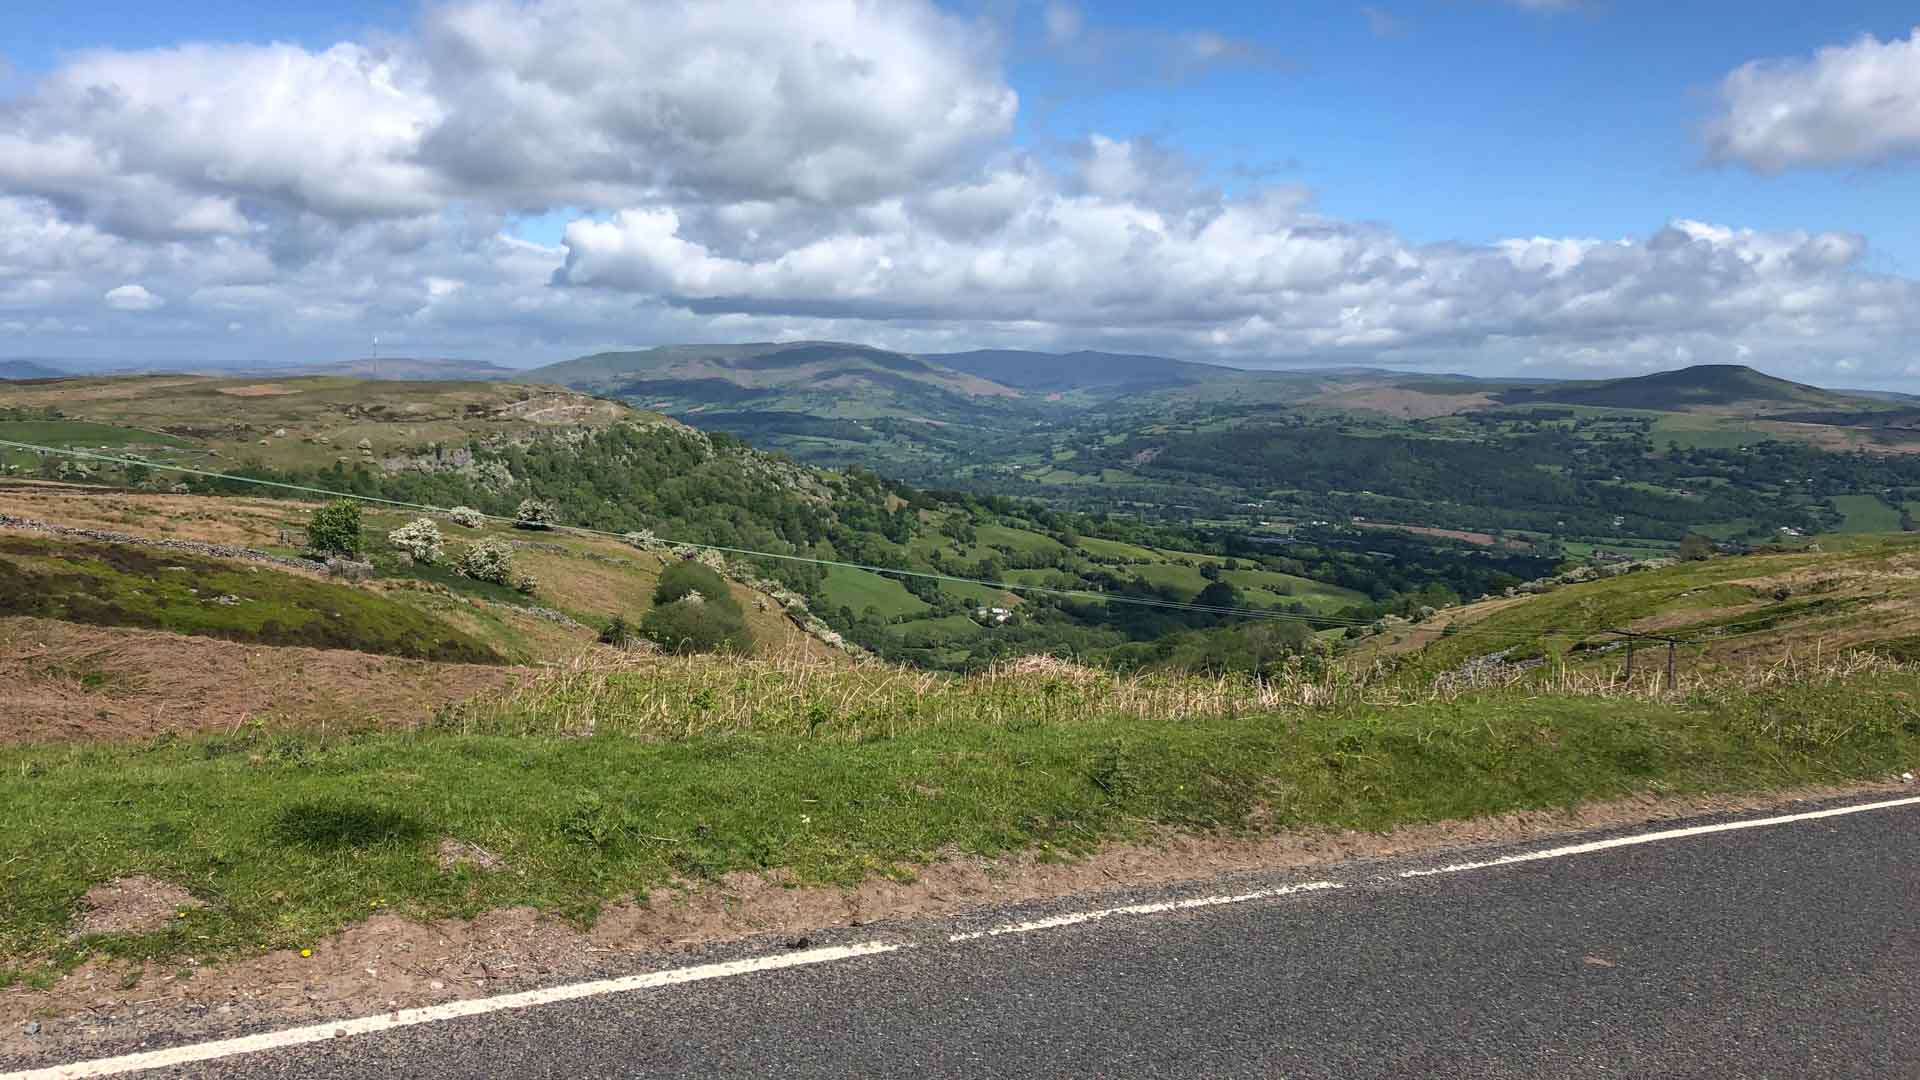 View from The Tumble, Wales climb